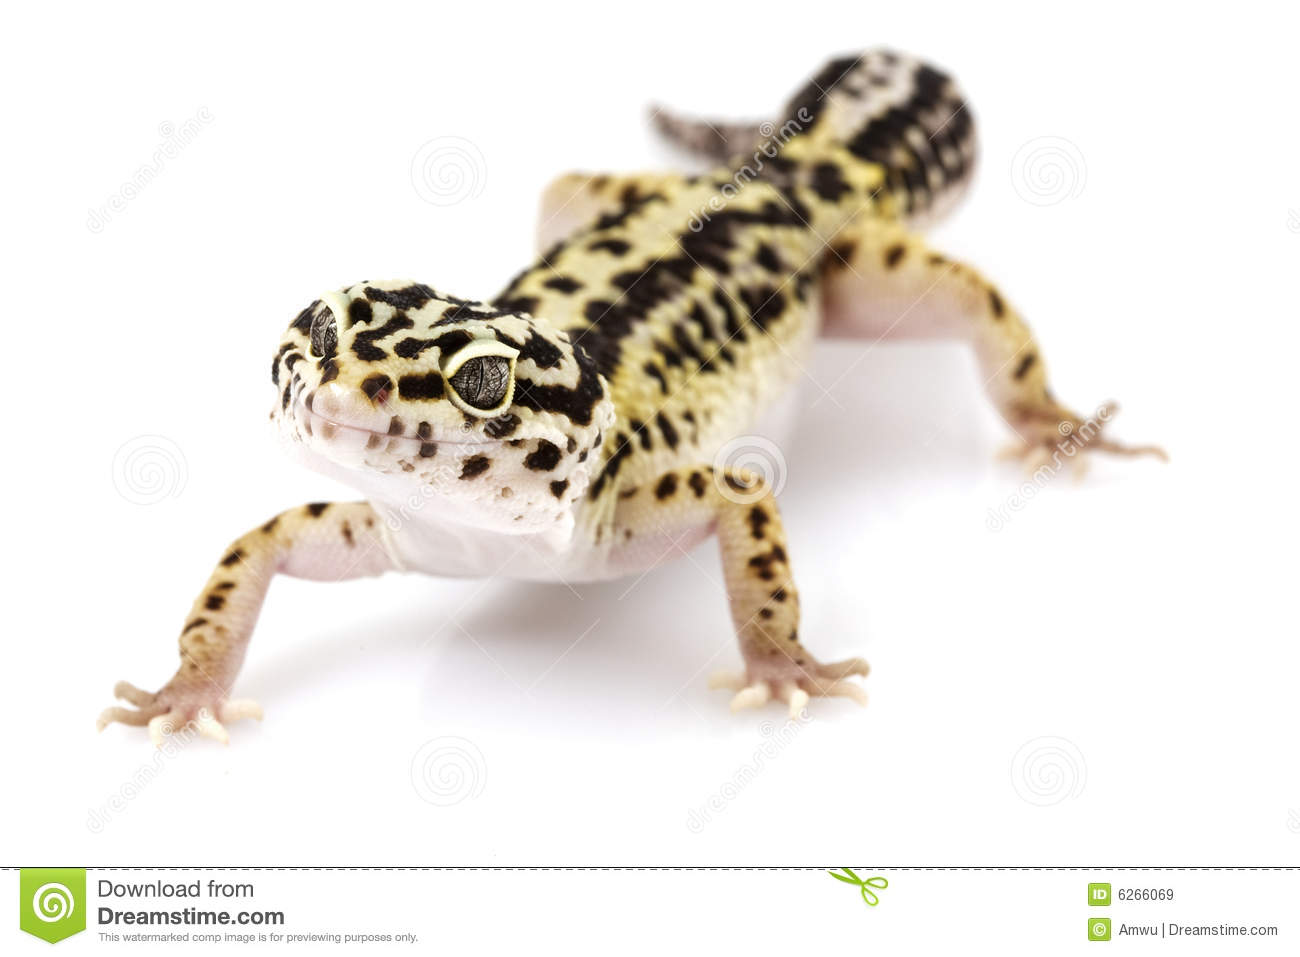 Leopard Animal Print Wallpaper Leopard Gecko Royalty Free Stock Images Image 6266069